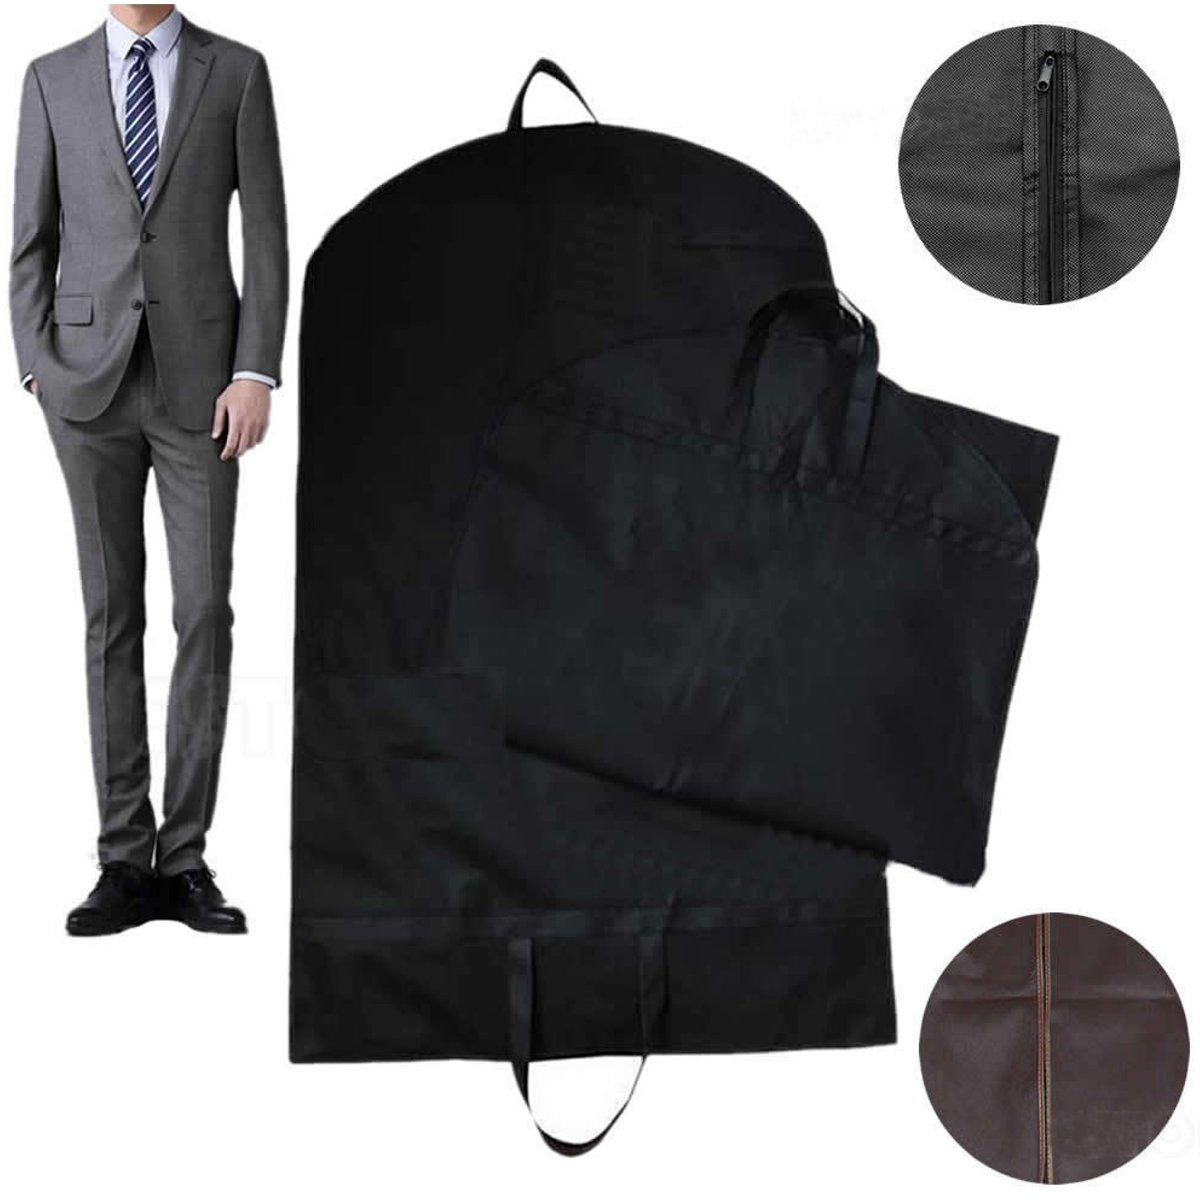 Black Suit Dress Coat Garment Storage Travel Carrier Bag Cover Hanger Protector SPECIAL TODAY !